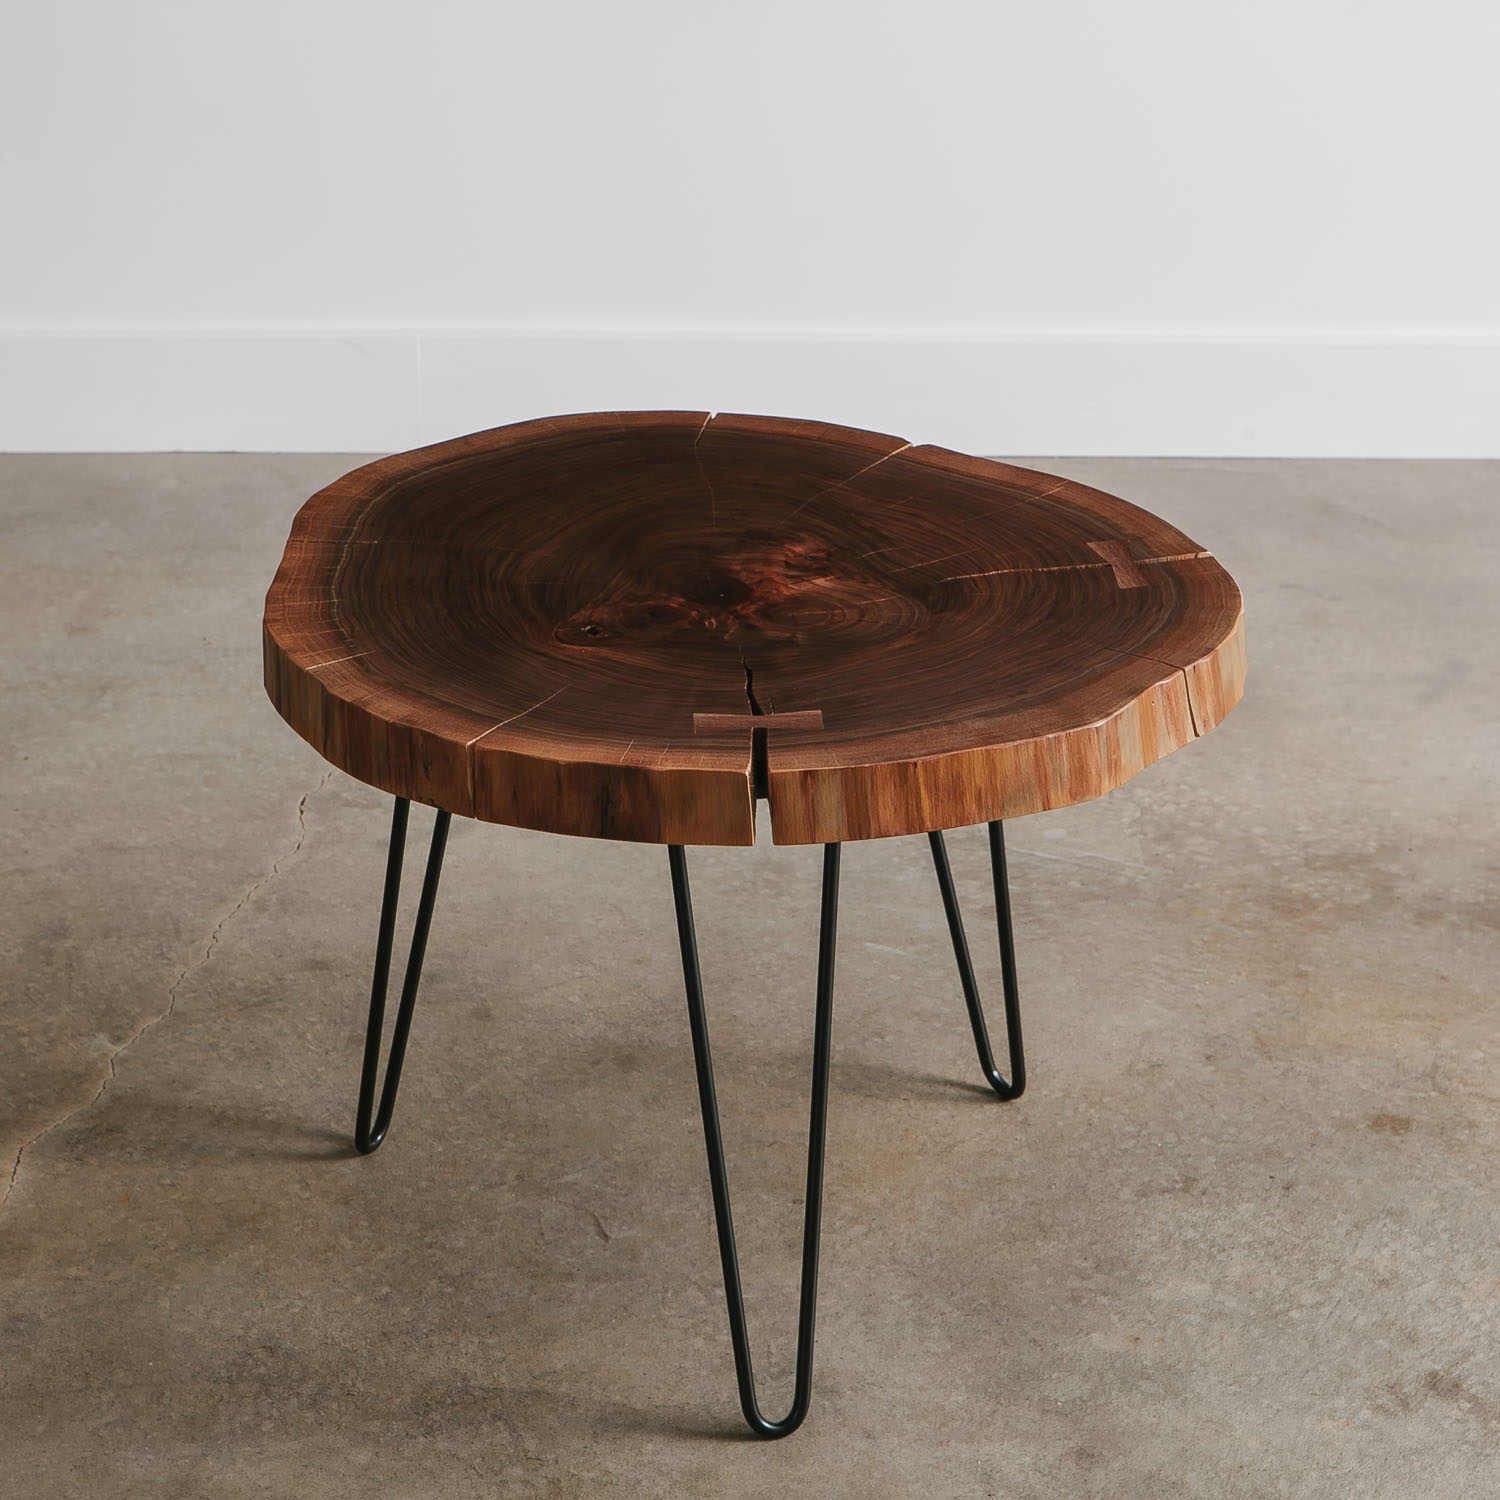 Classy walnut live edge round side table